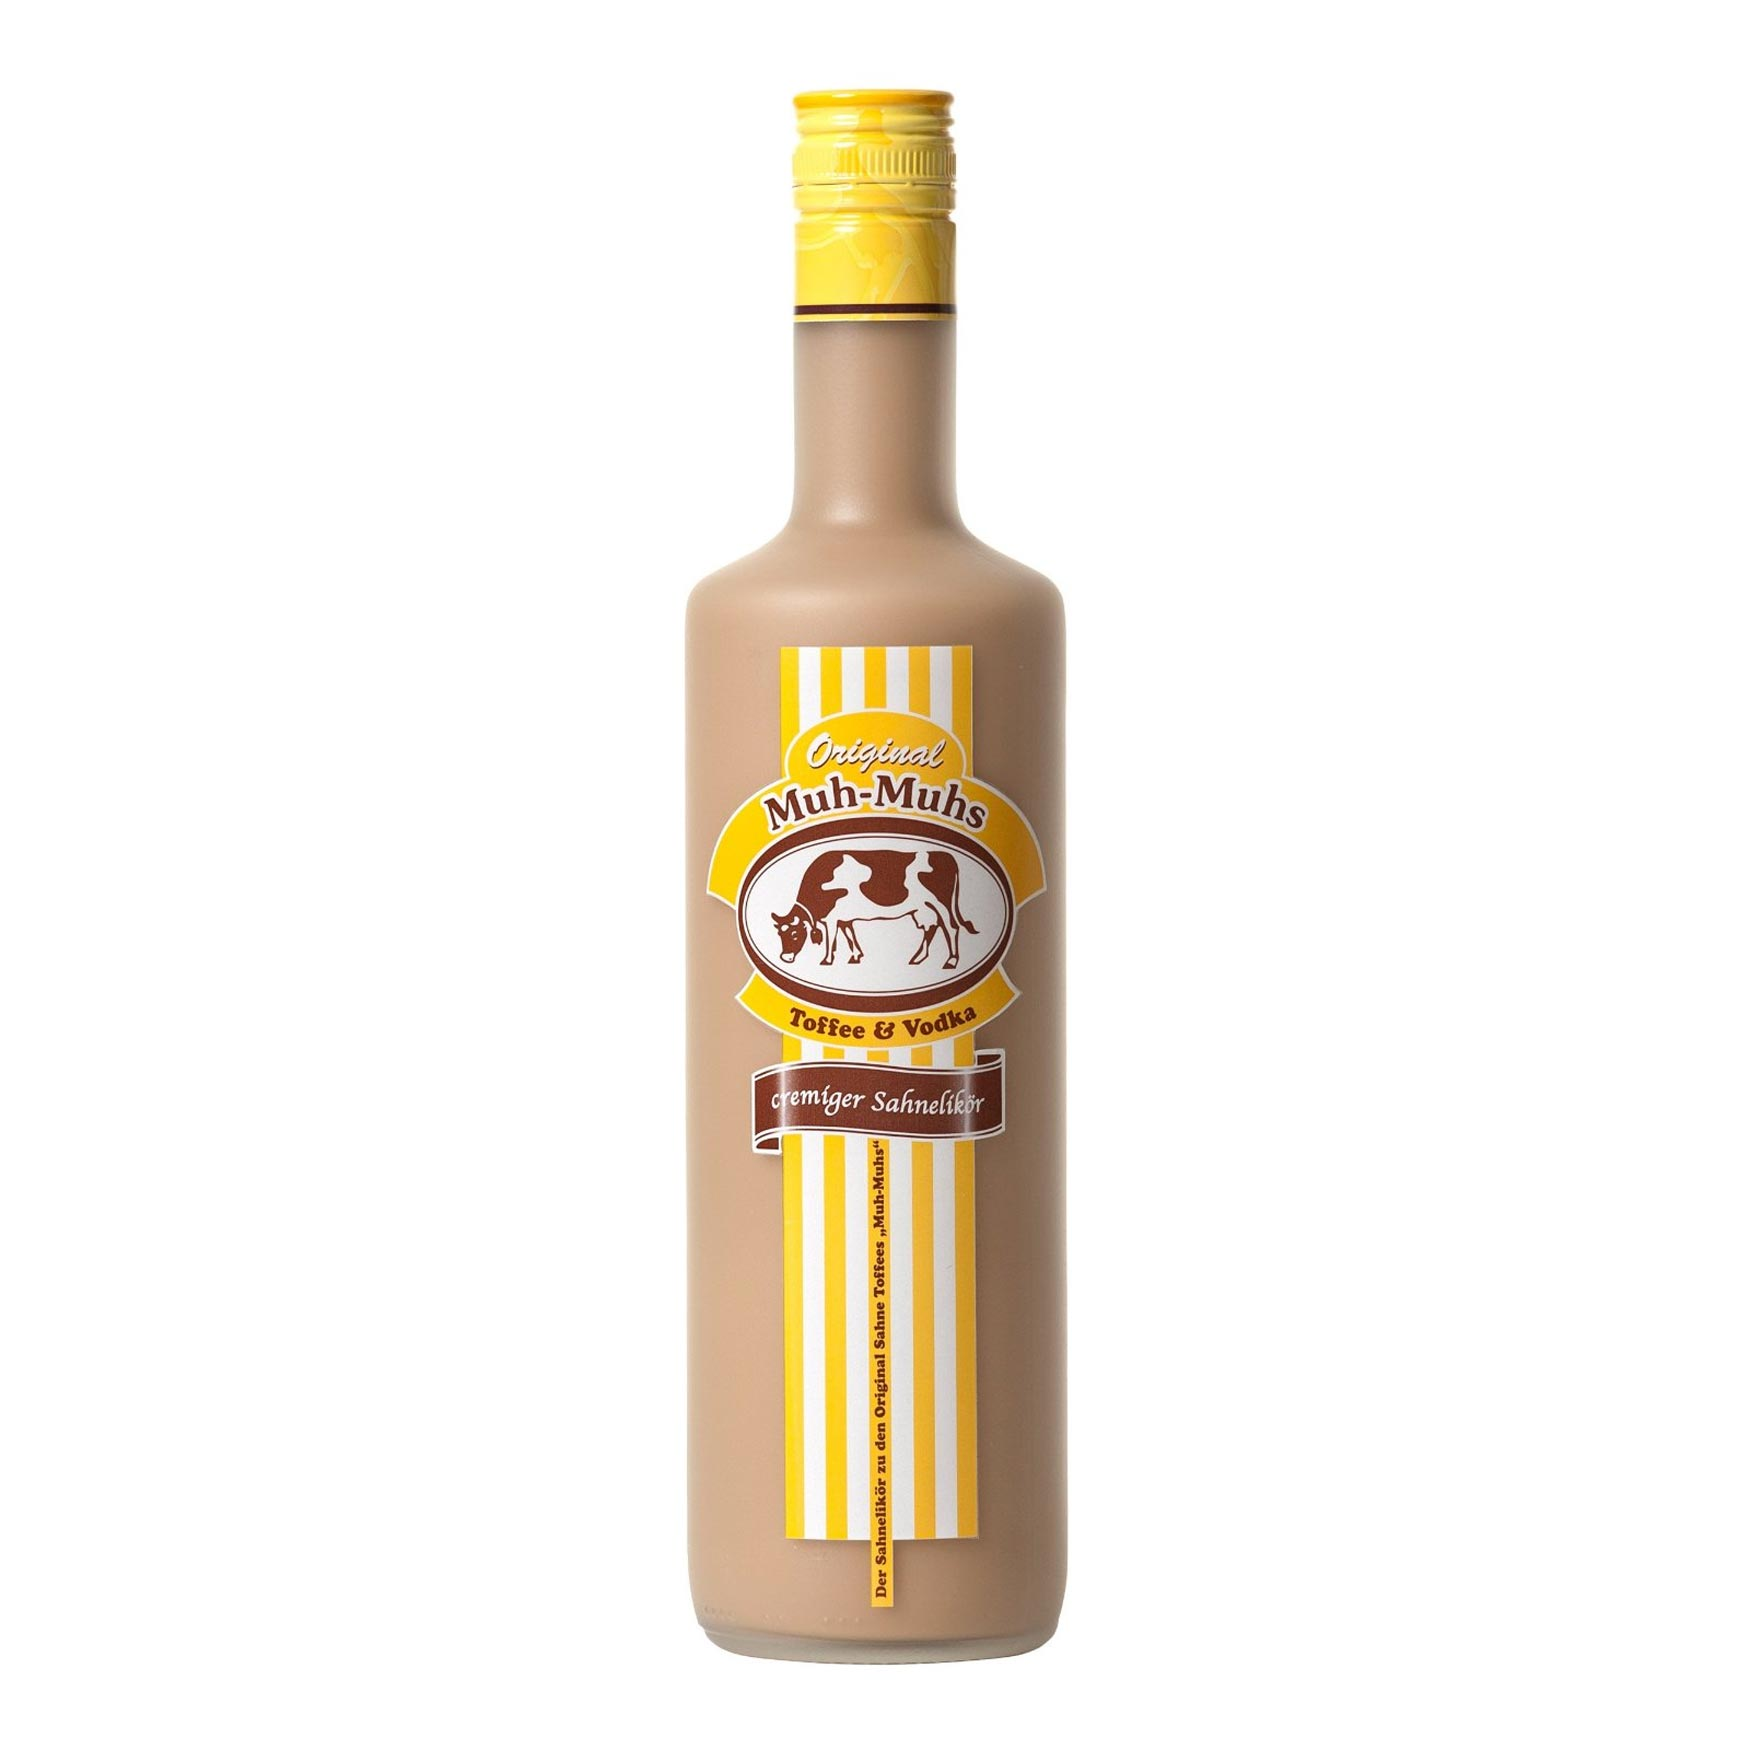 Cocktail-Gläser Original Muh-Muhs Toffee & Vodka Sahne-Likör - 70cl ...